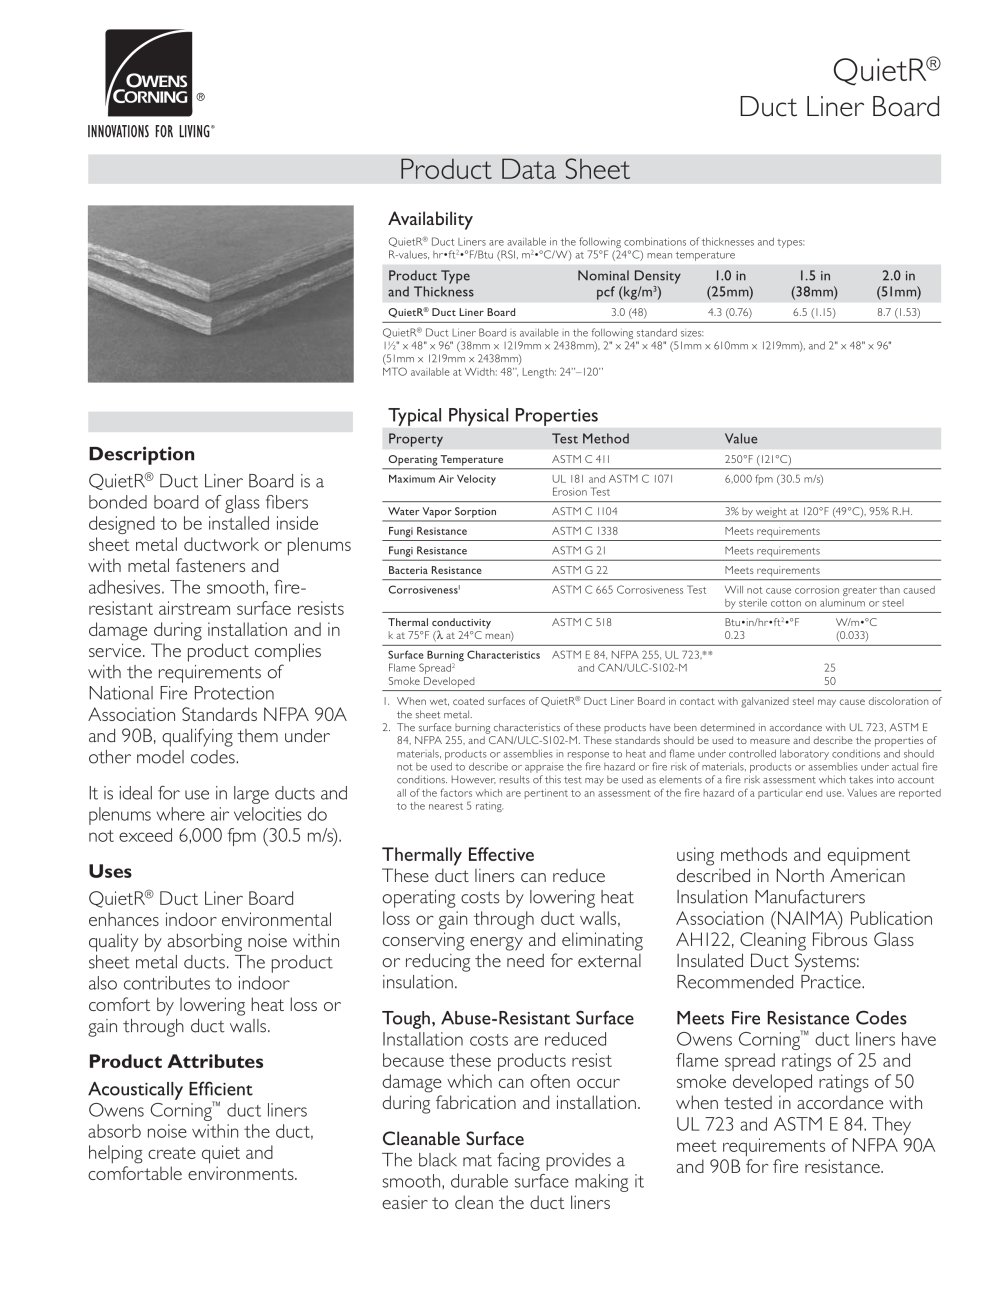 838-adhesive slnt 305ml datasheet - ellsworth adhesives - dow.